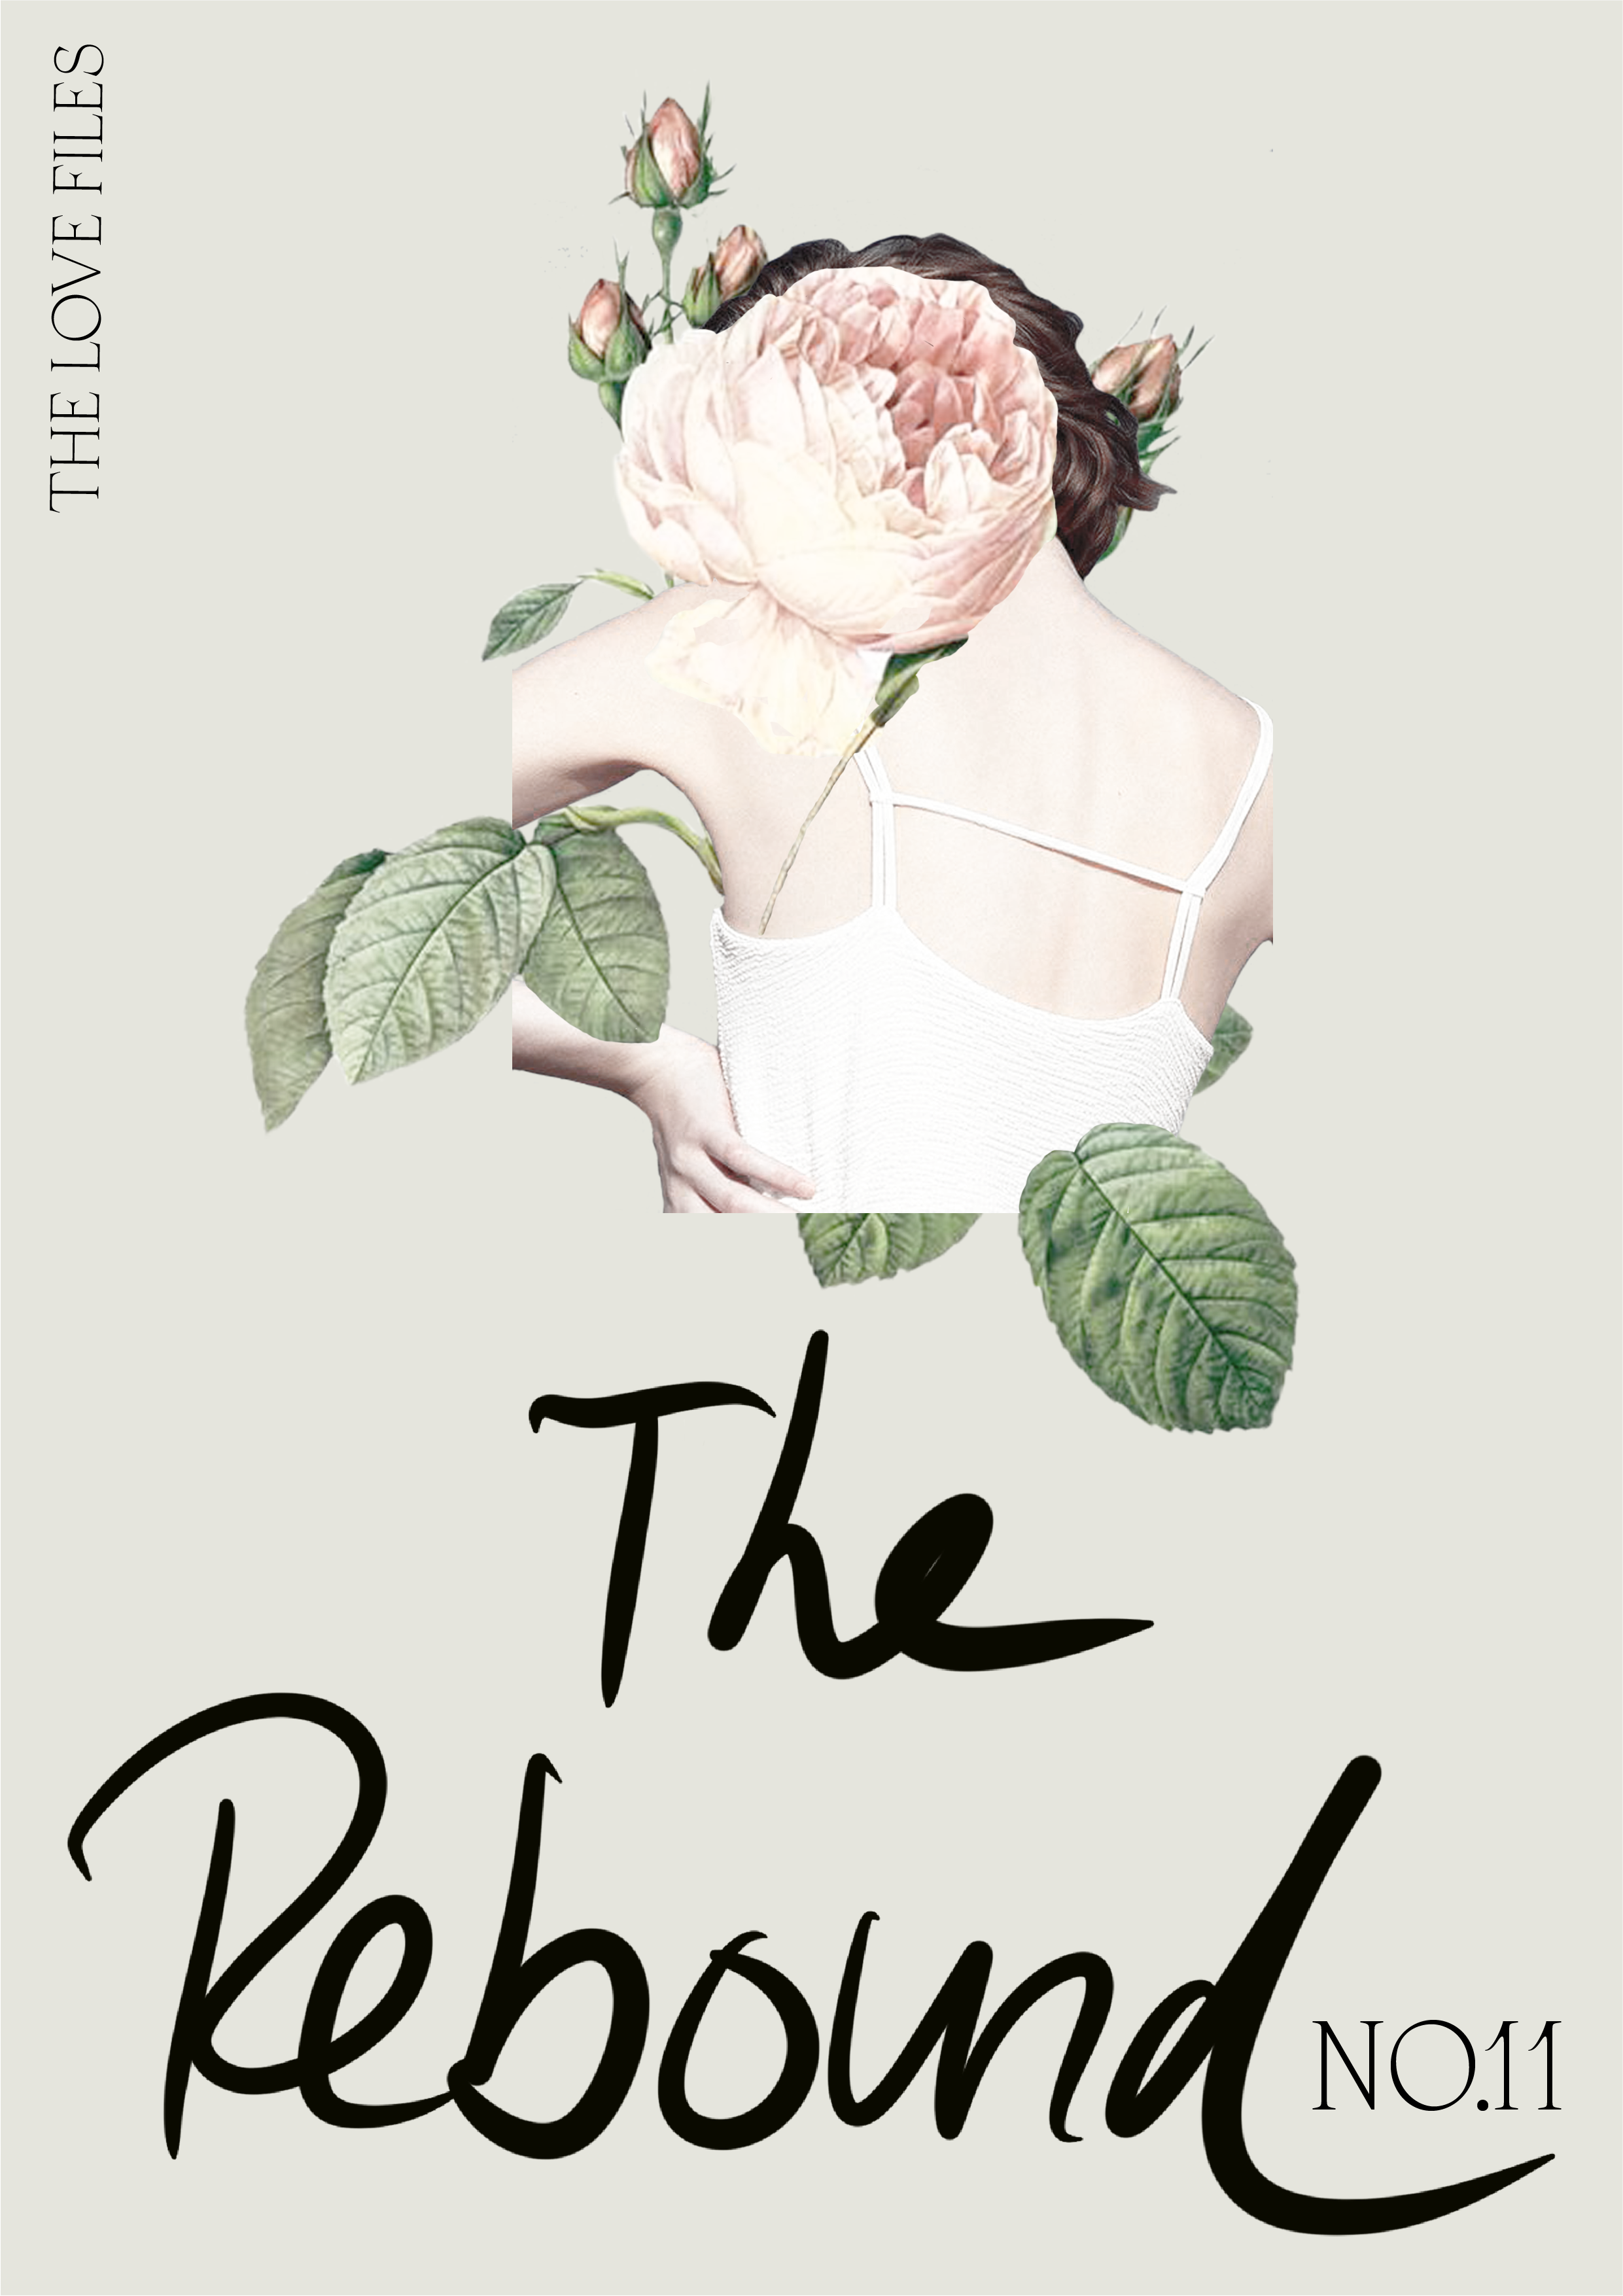 The Love Files No.11 // The Rebound // Phylleli Design Studio, Online-Shop and Self-Care Blog #design #layout #graphicdesign #collage #collageart #lettering #typography #loveandrelationships #wellbeing #mentalhealth #minimalism #heartache #NML #baggagereclaim #breakup #rebound #emotionalairbag #cheating #overlapping